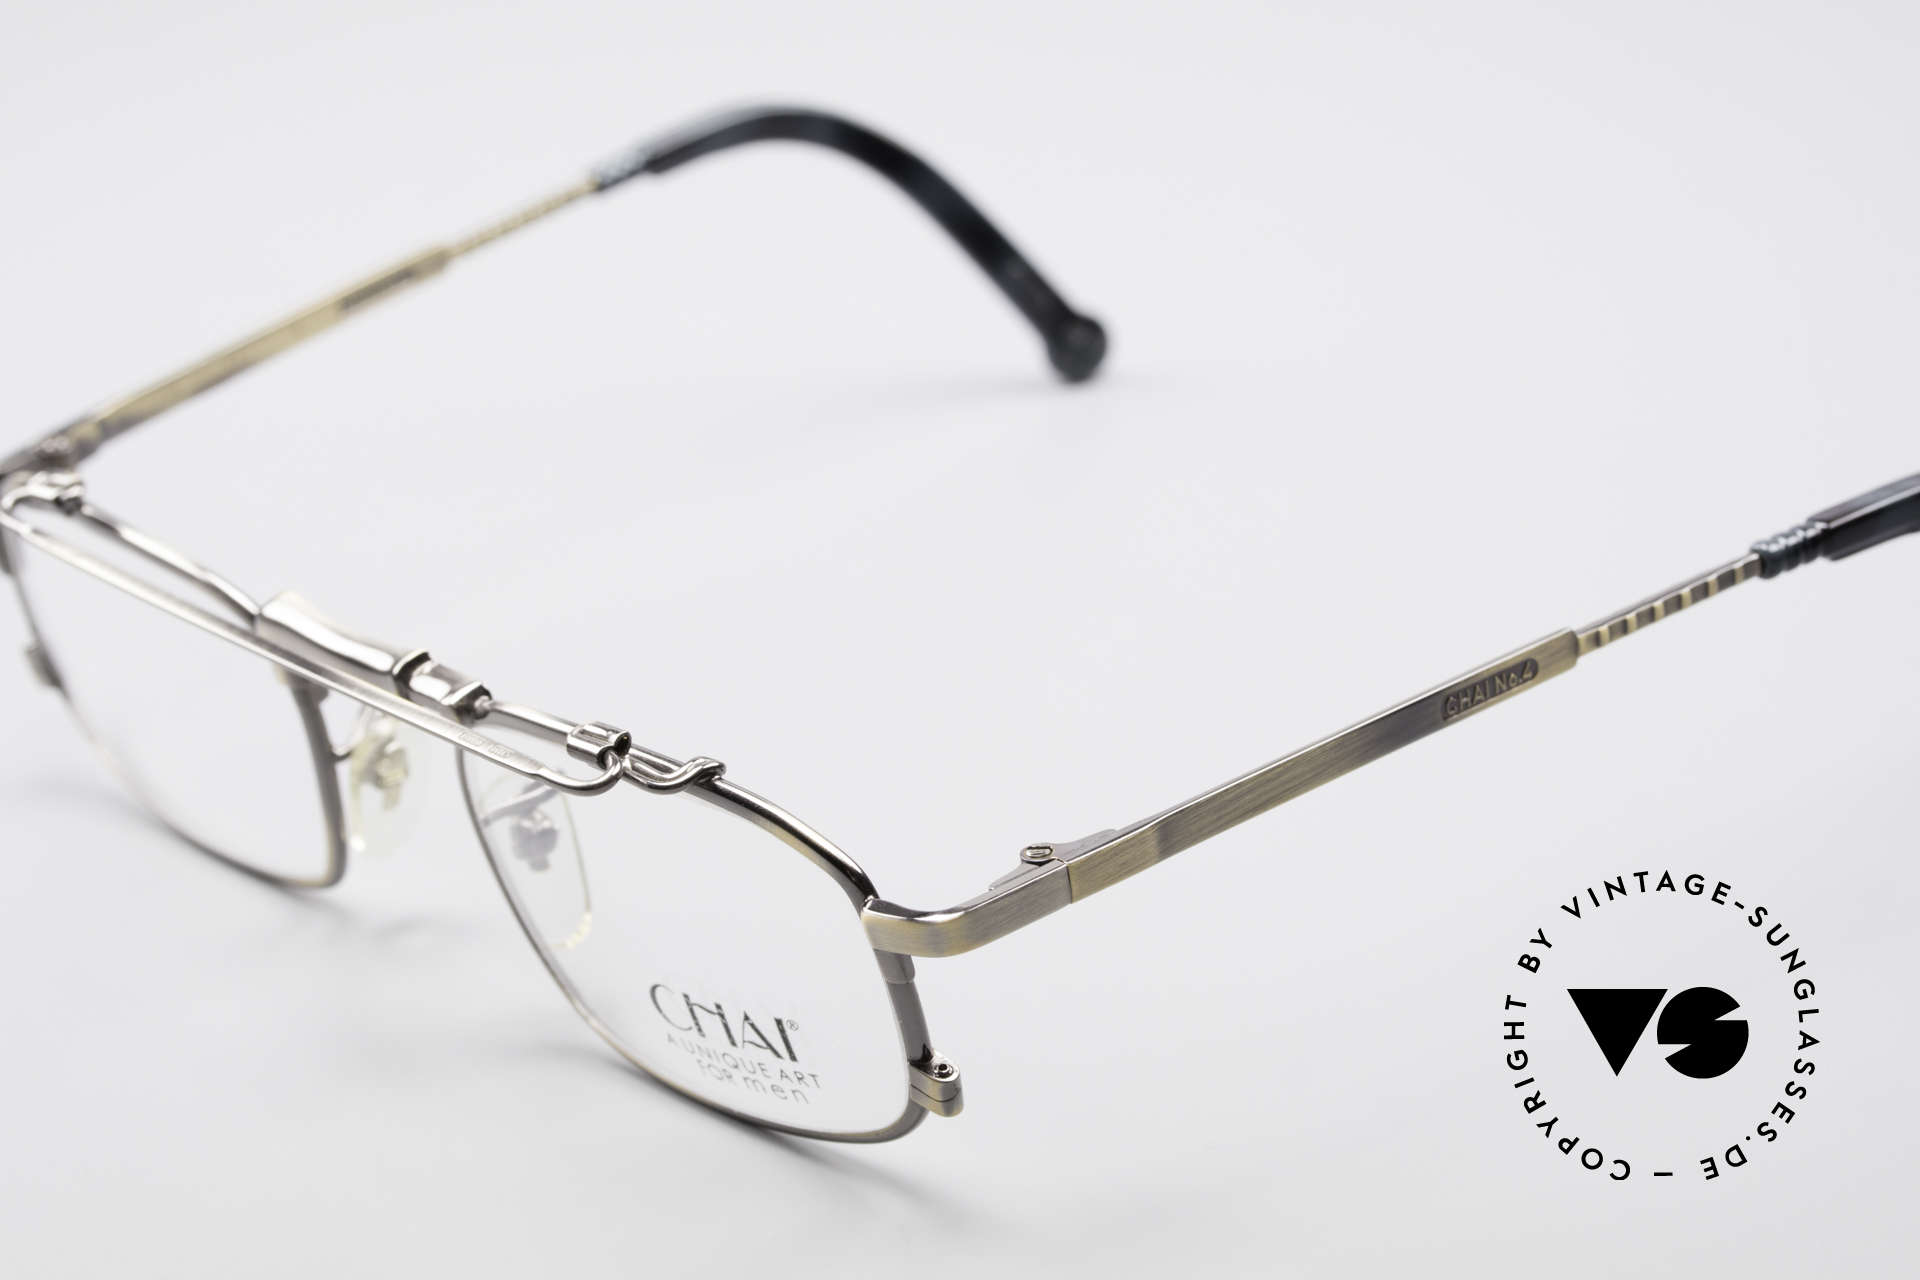 Chai No4 Square Unique Art For Men Glasses, however, a great old designer piece from Germany, Made for Men and Women